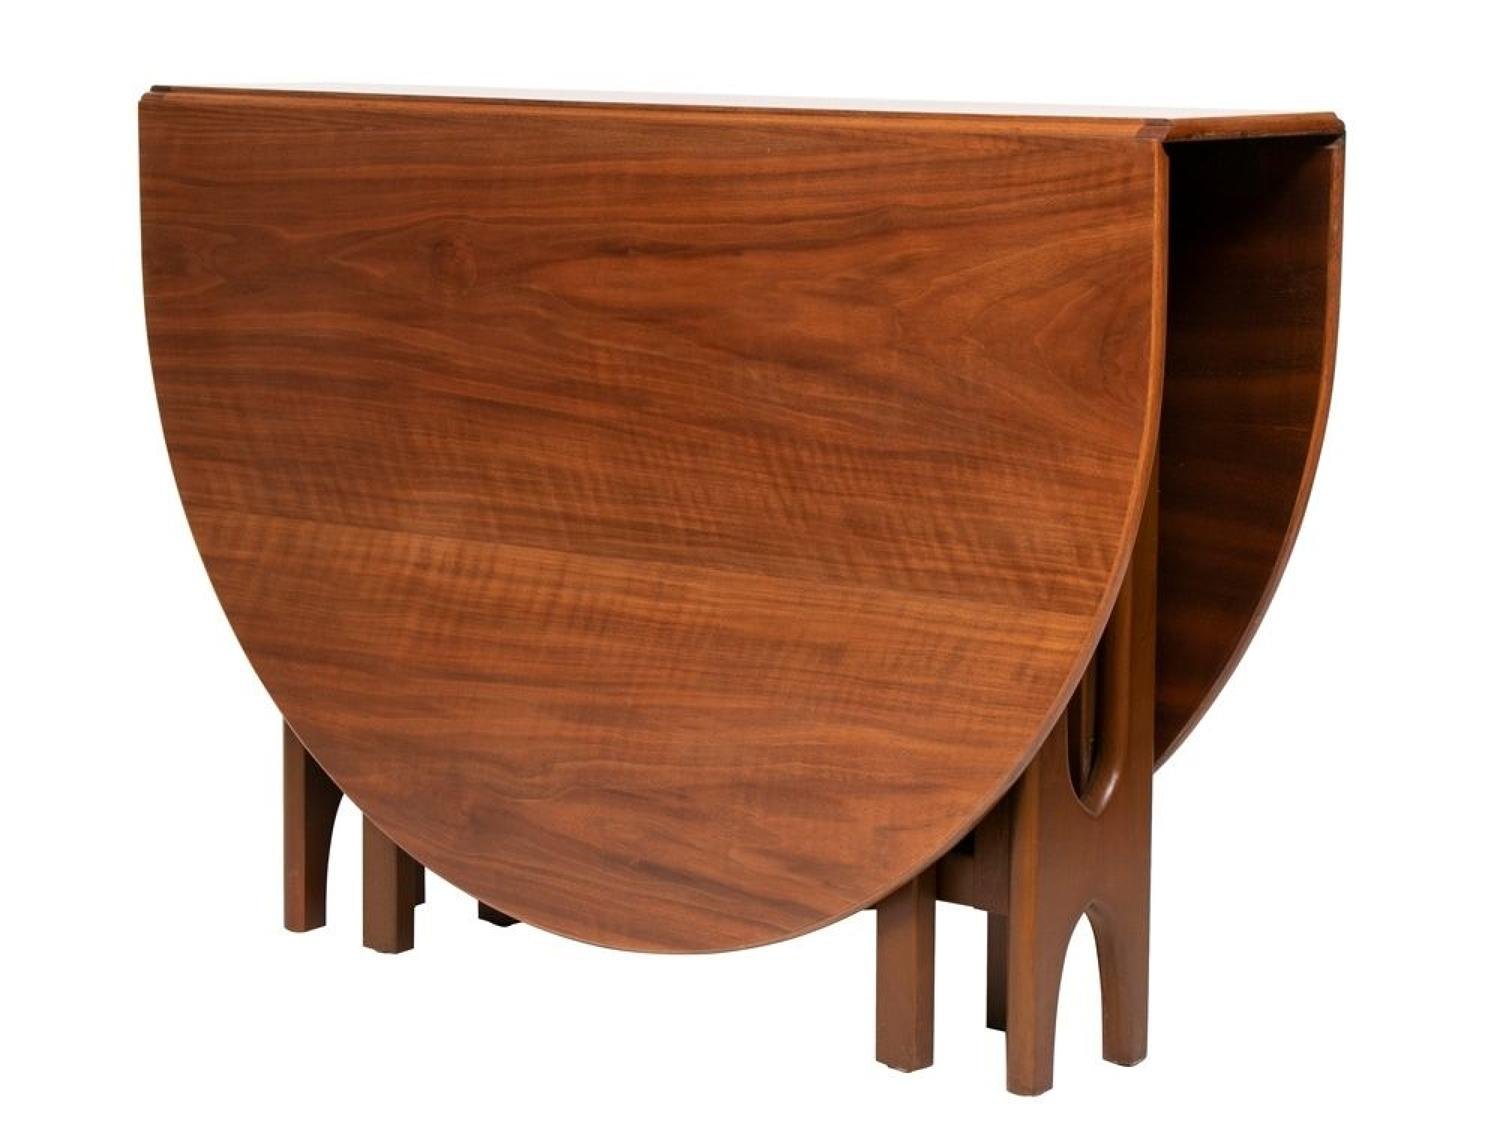 Midcentury Drop Leaf Dining Table by G Plan c.1970